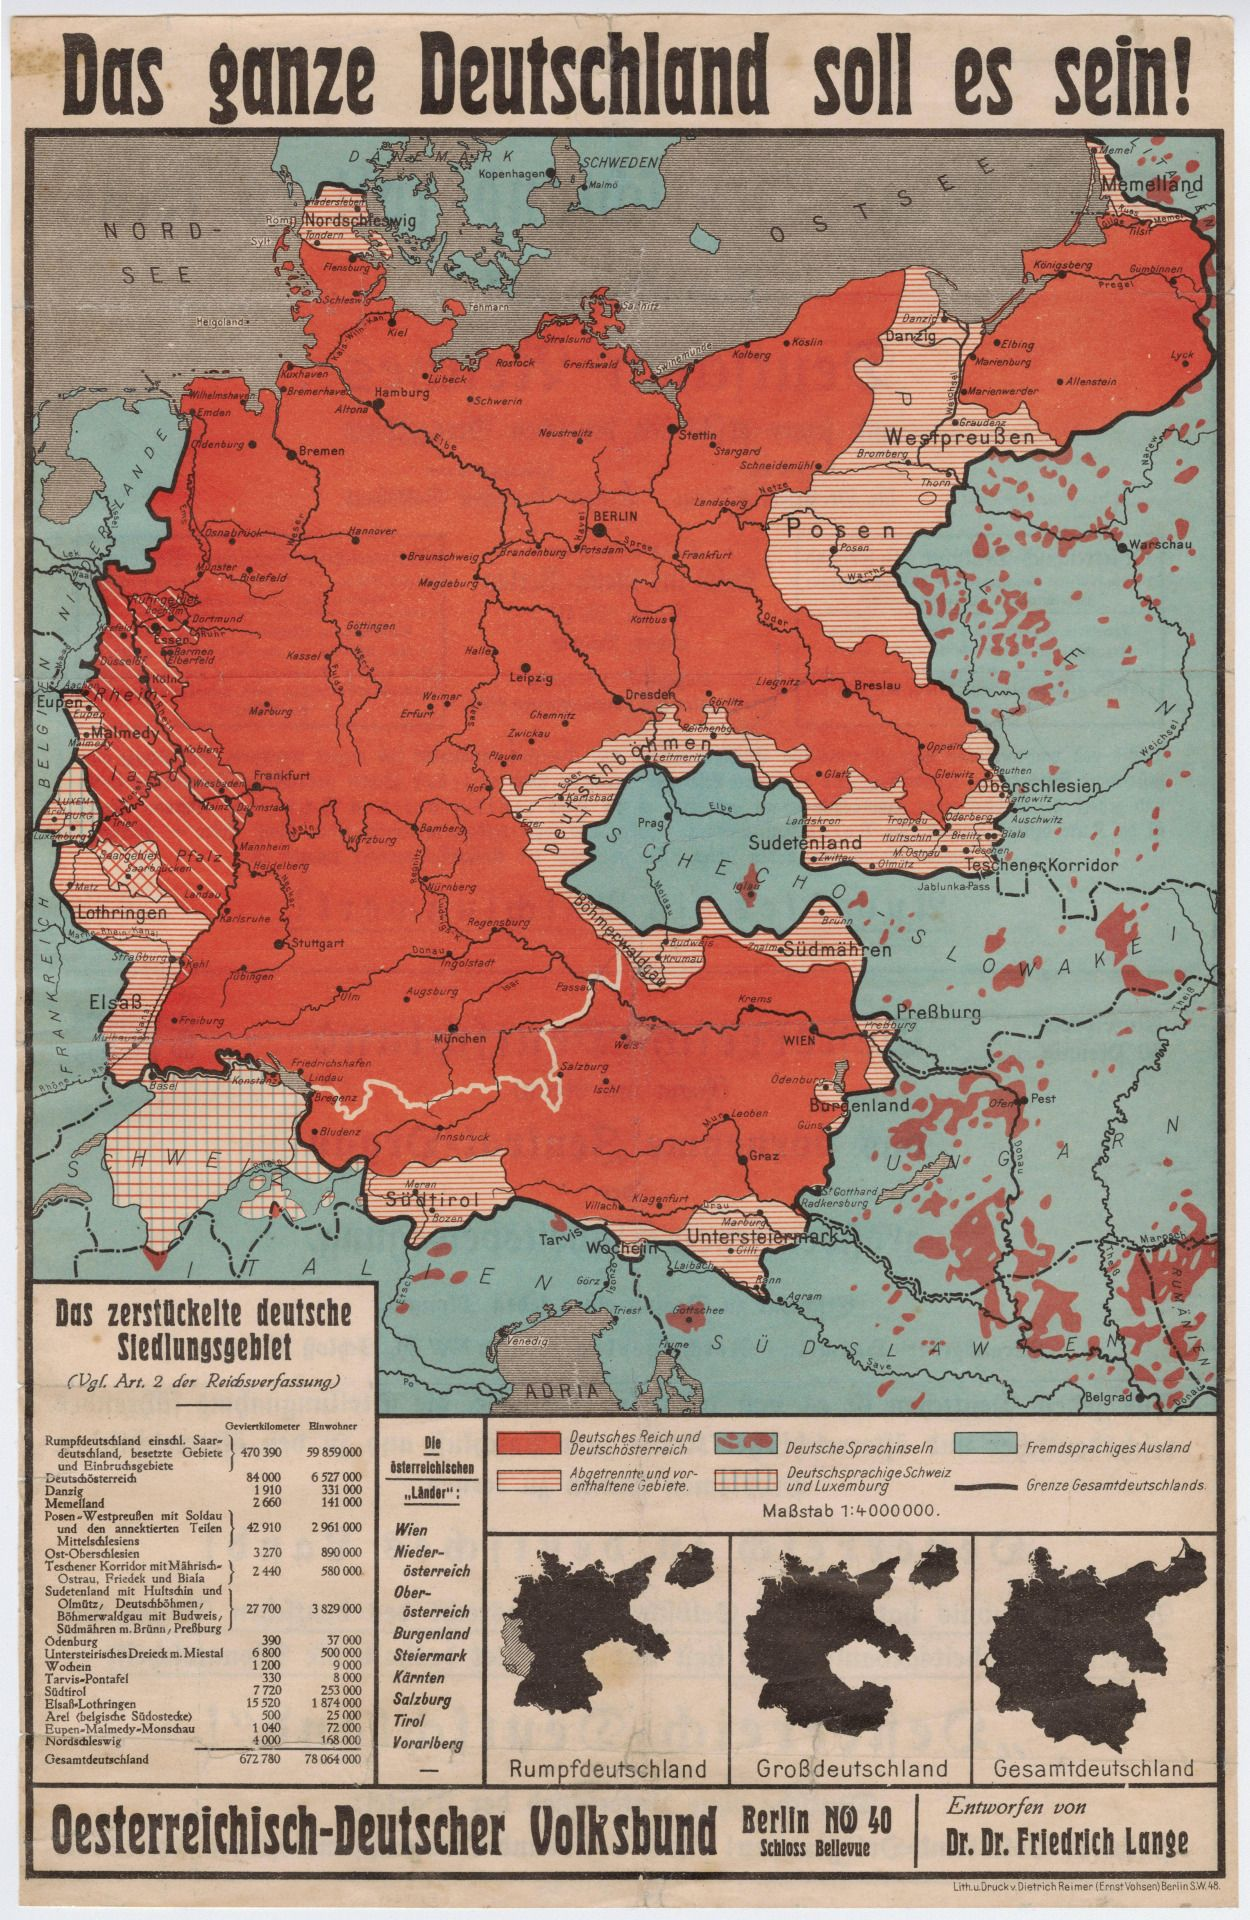 Das ganze Deutschland soll es sein! It Should/Shall All Be German. [[MORE]]In the 1920s, Germany needed cartographic support for its claims that the Treaty of Versailles had been unfair. Language...